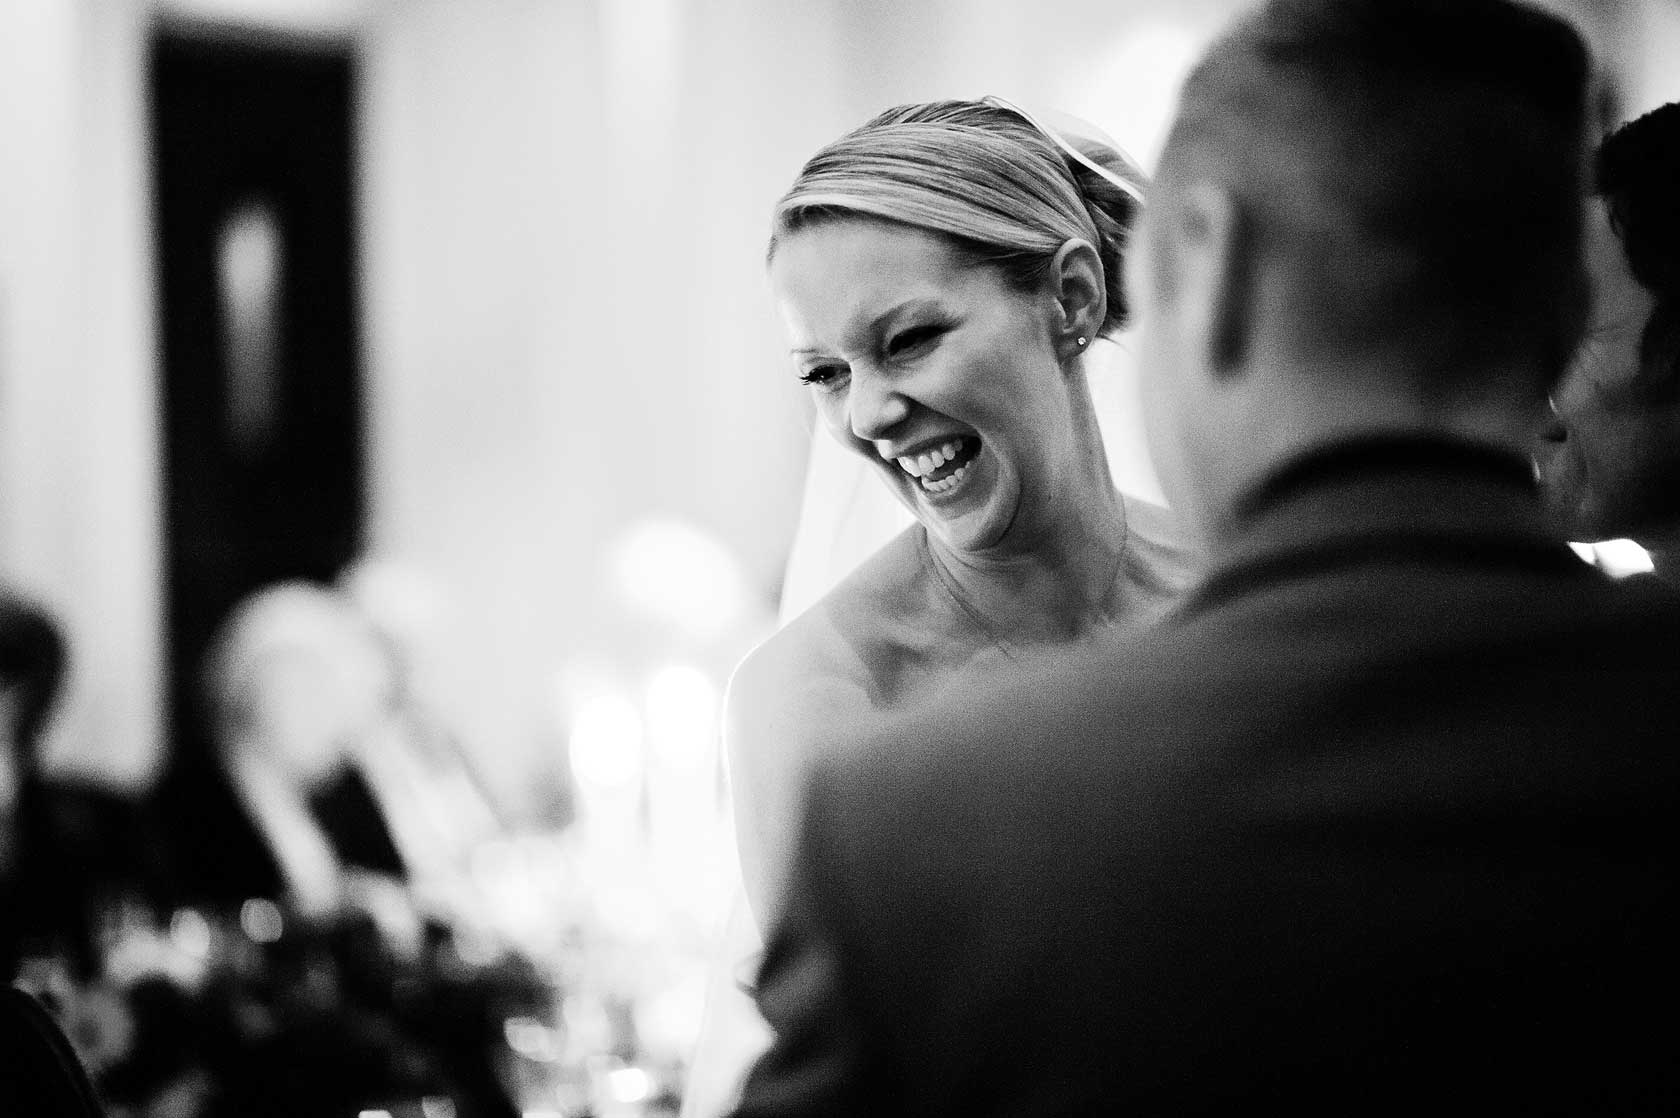 Reportage Wedding Photography at The Lanesborough